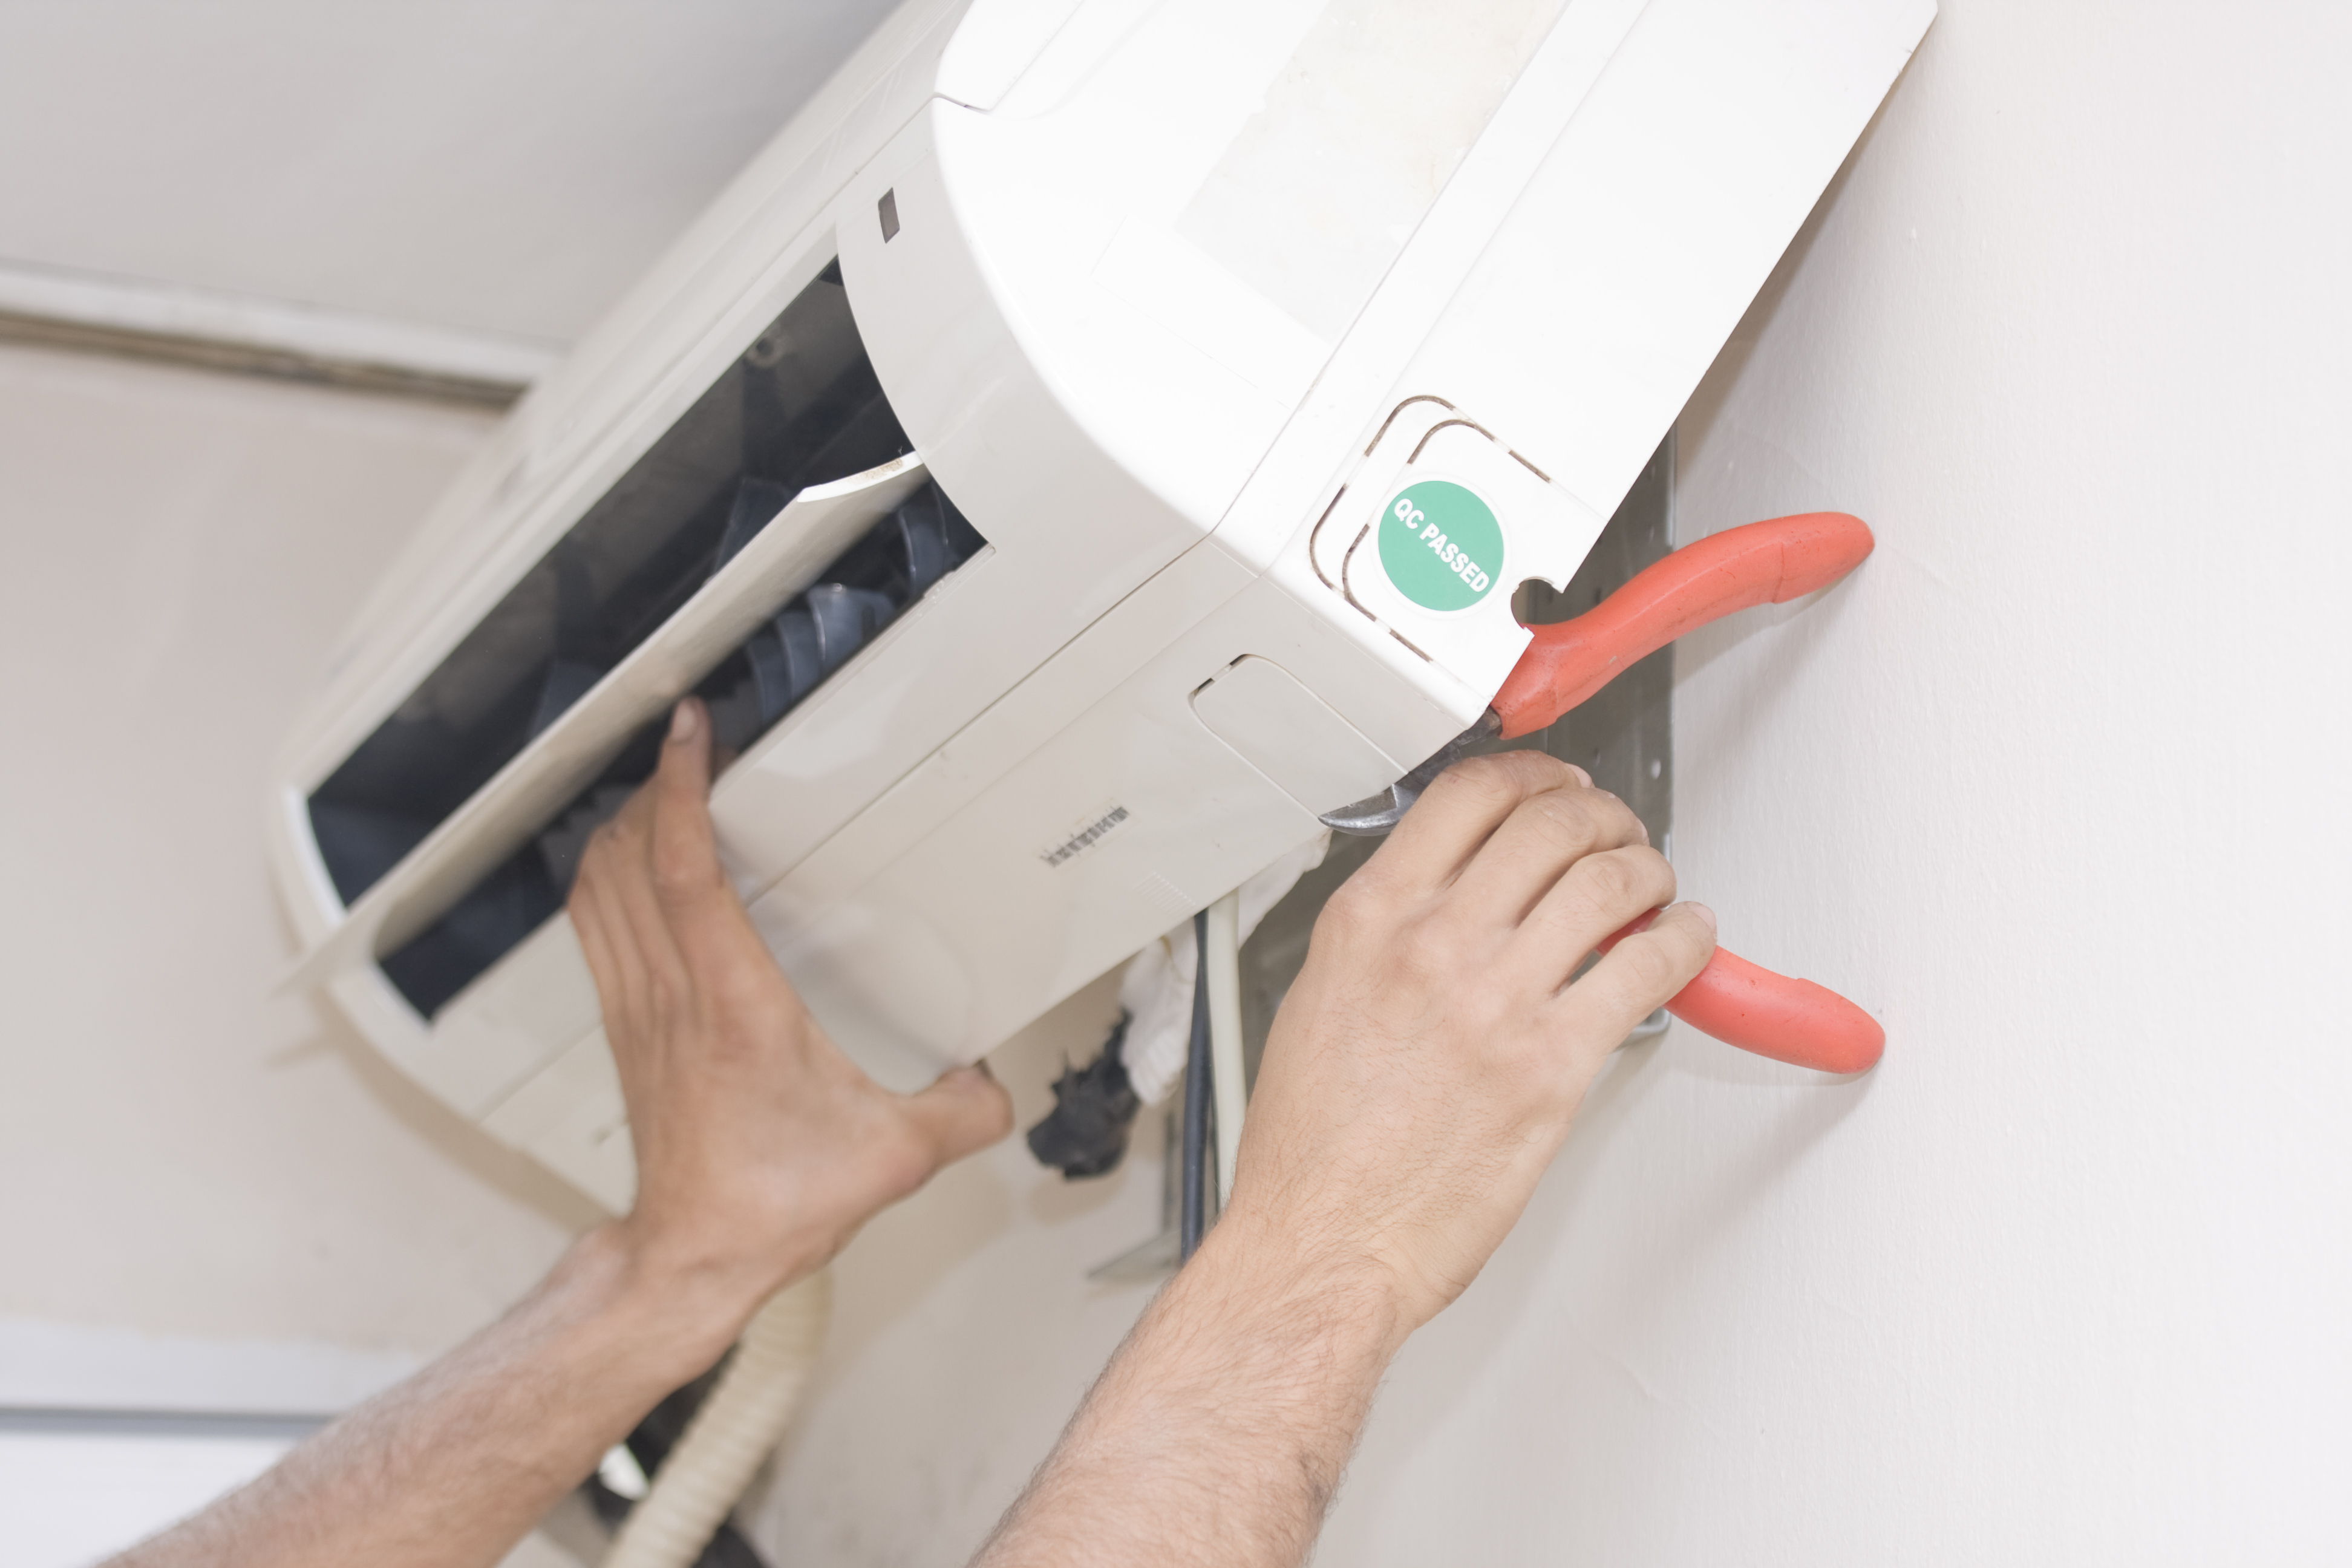 Installation of air conditioners 98